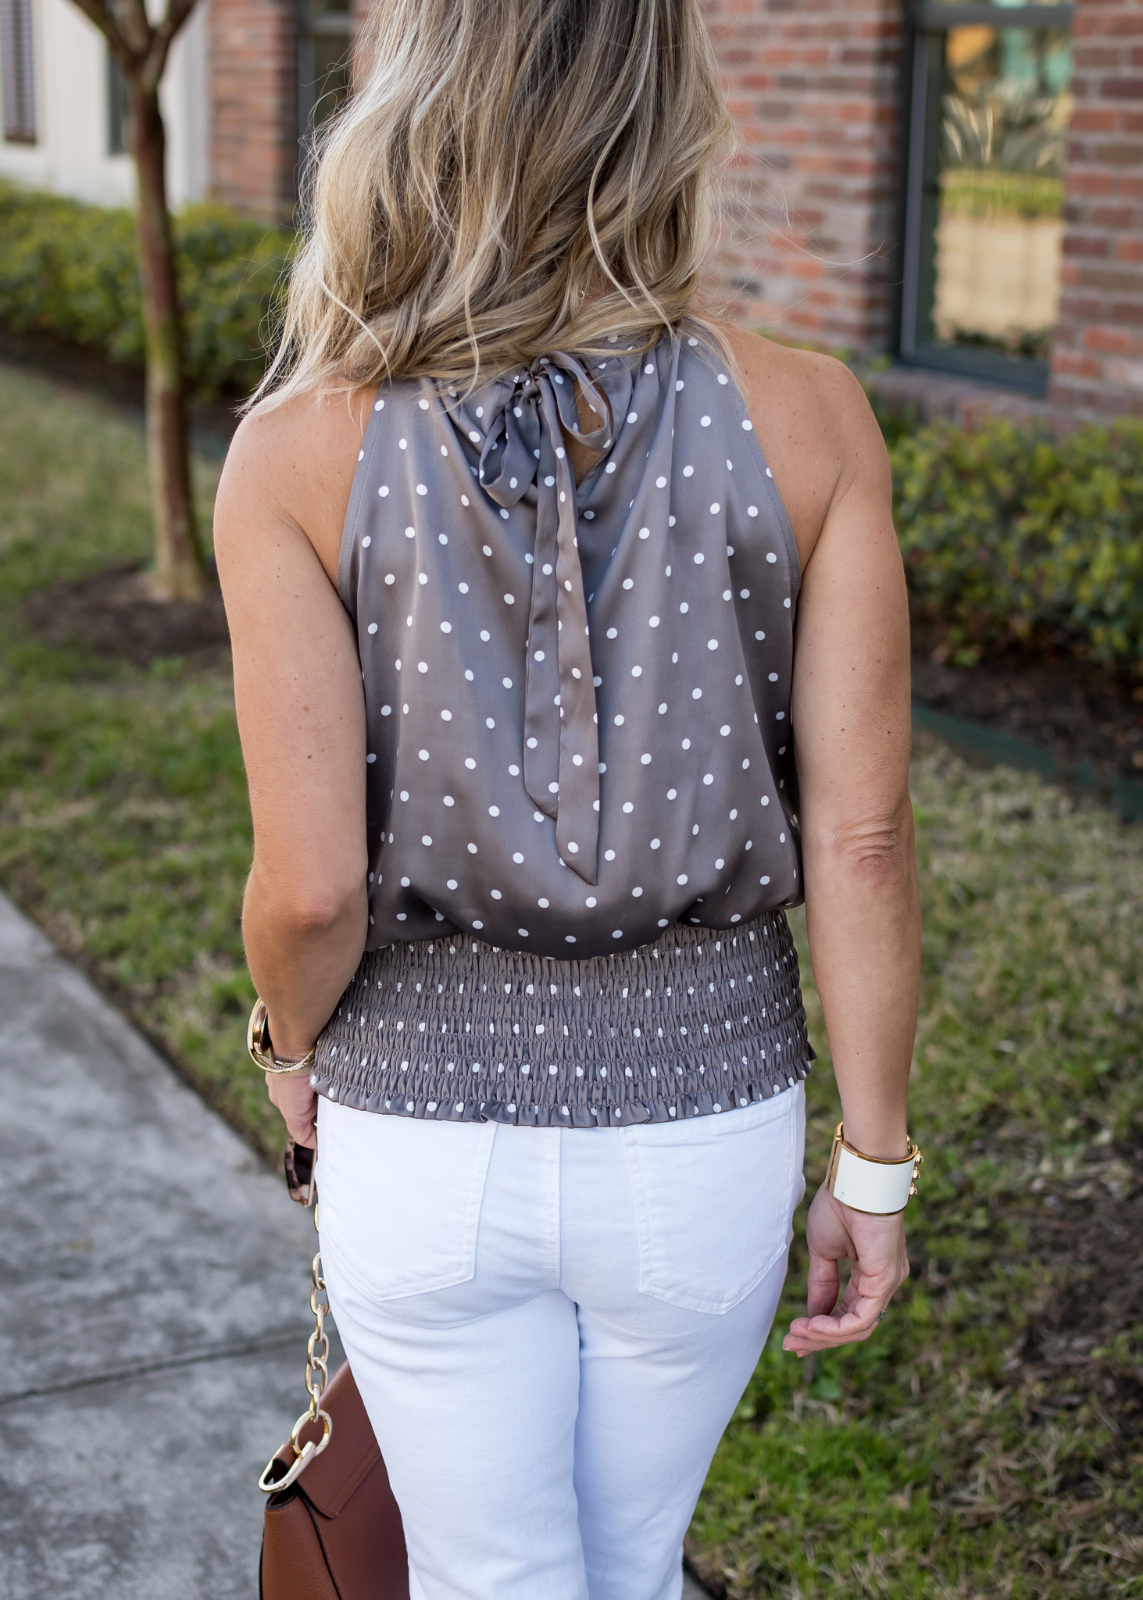 Polka dot halter and white jeans